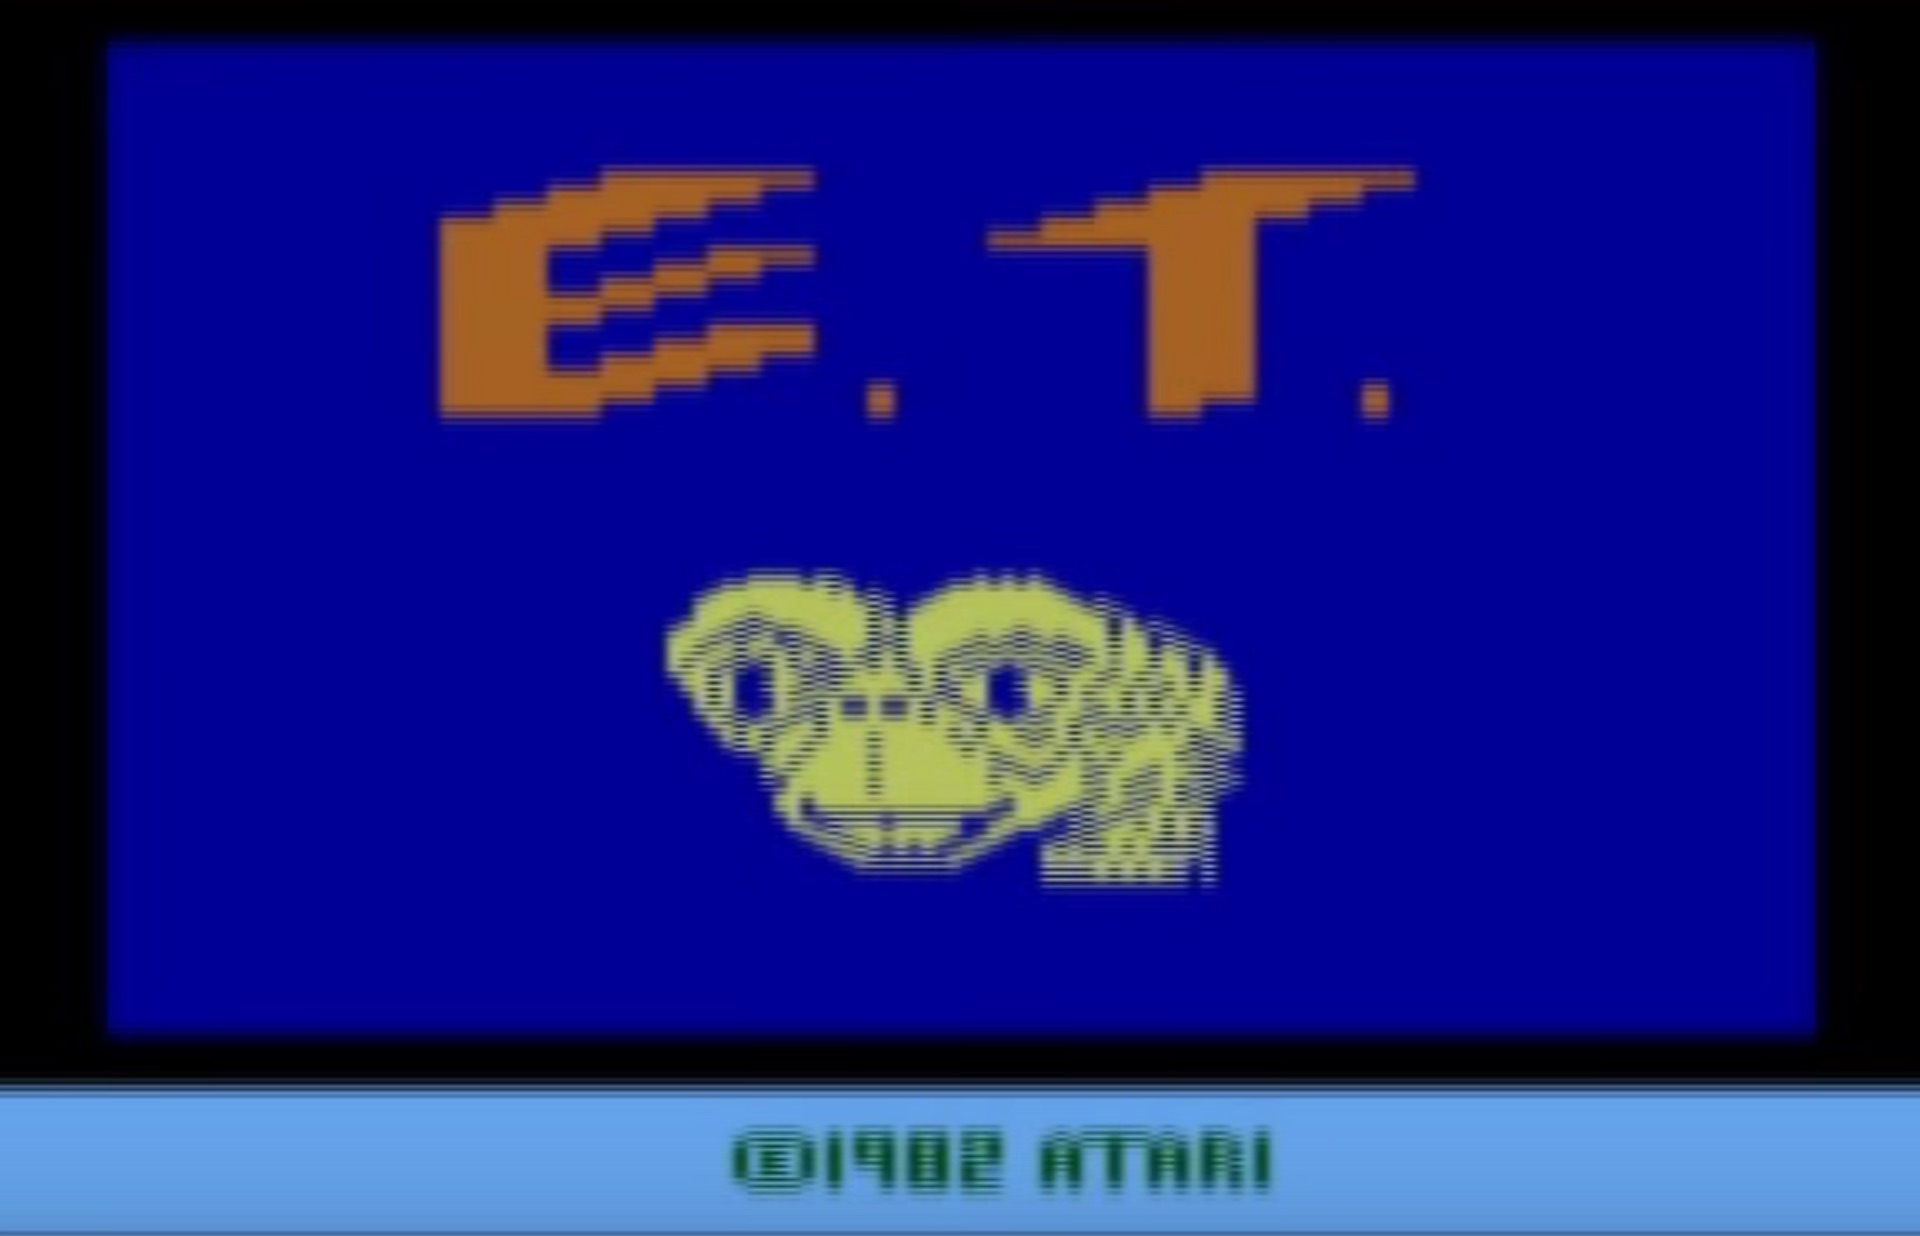 If you have an old Atari 'E.T.' game, you could be rich